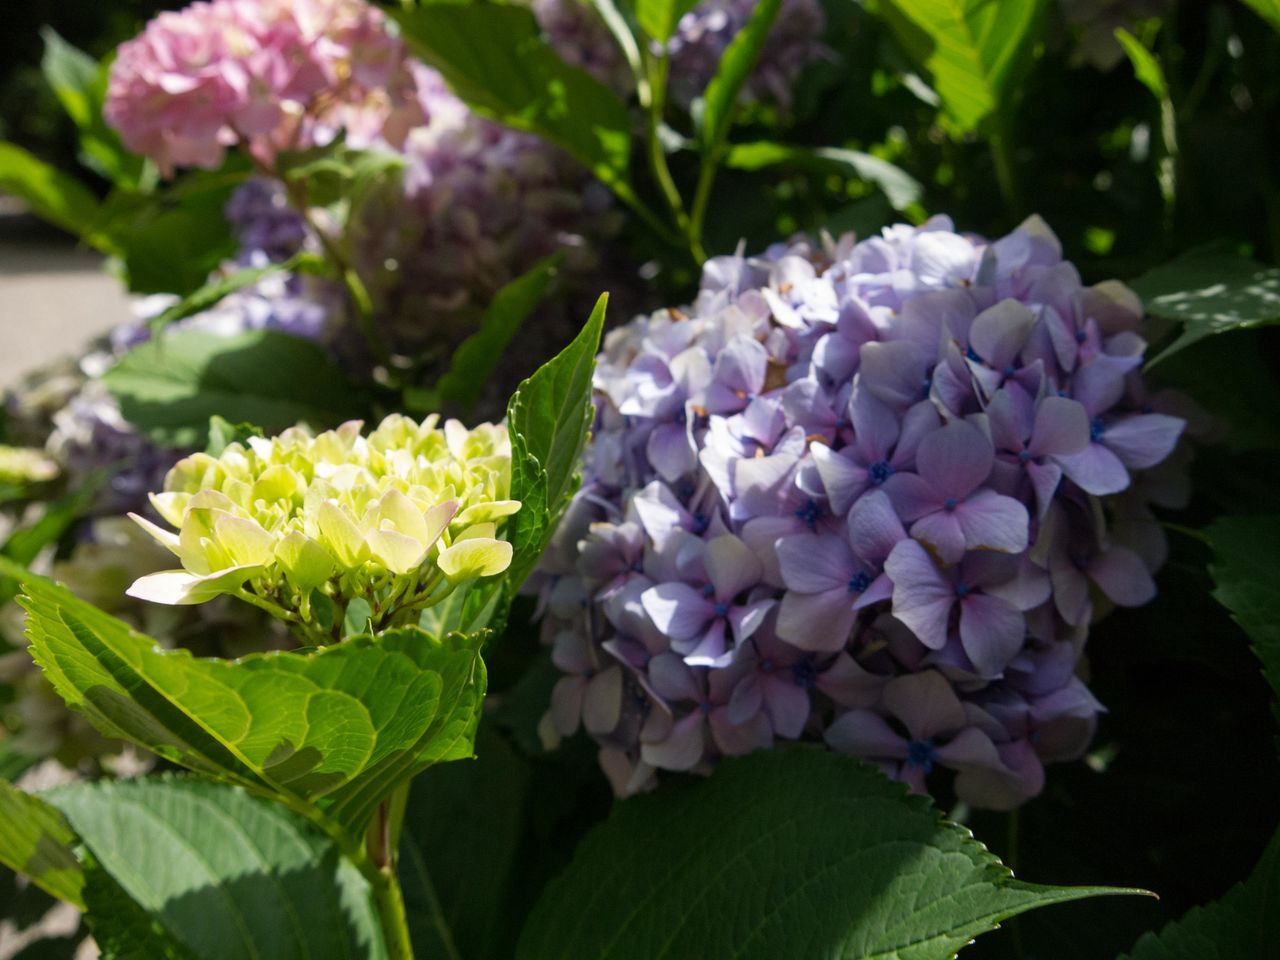 Beauty In Nature Blooming Close-up Day Flower Flower Head Fragility Freshness Growth Hydrangea Leaf Lilac Nature No People Outdoors Petal Plant Purple